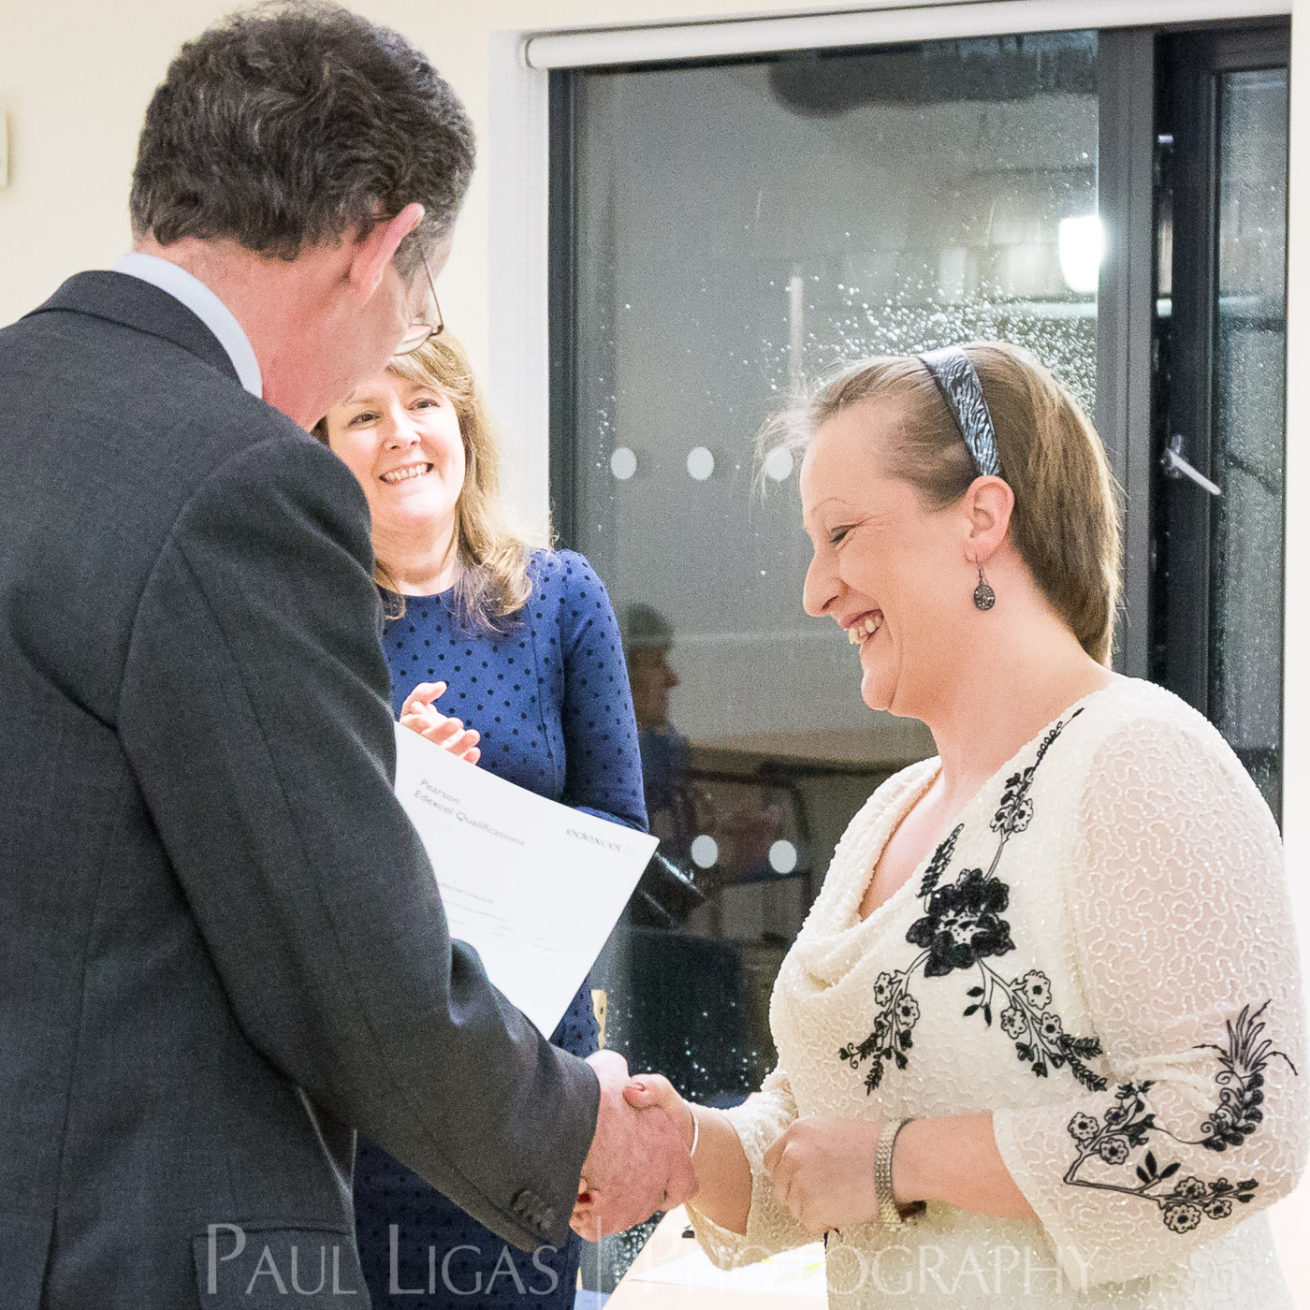 HOPE Family Centre, Bromyard, Herefordshire charity event photographer photography 4667